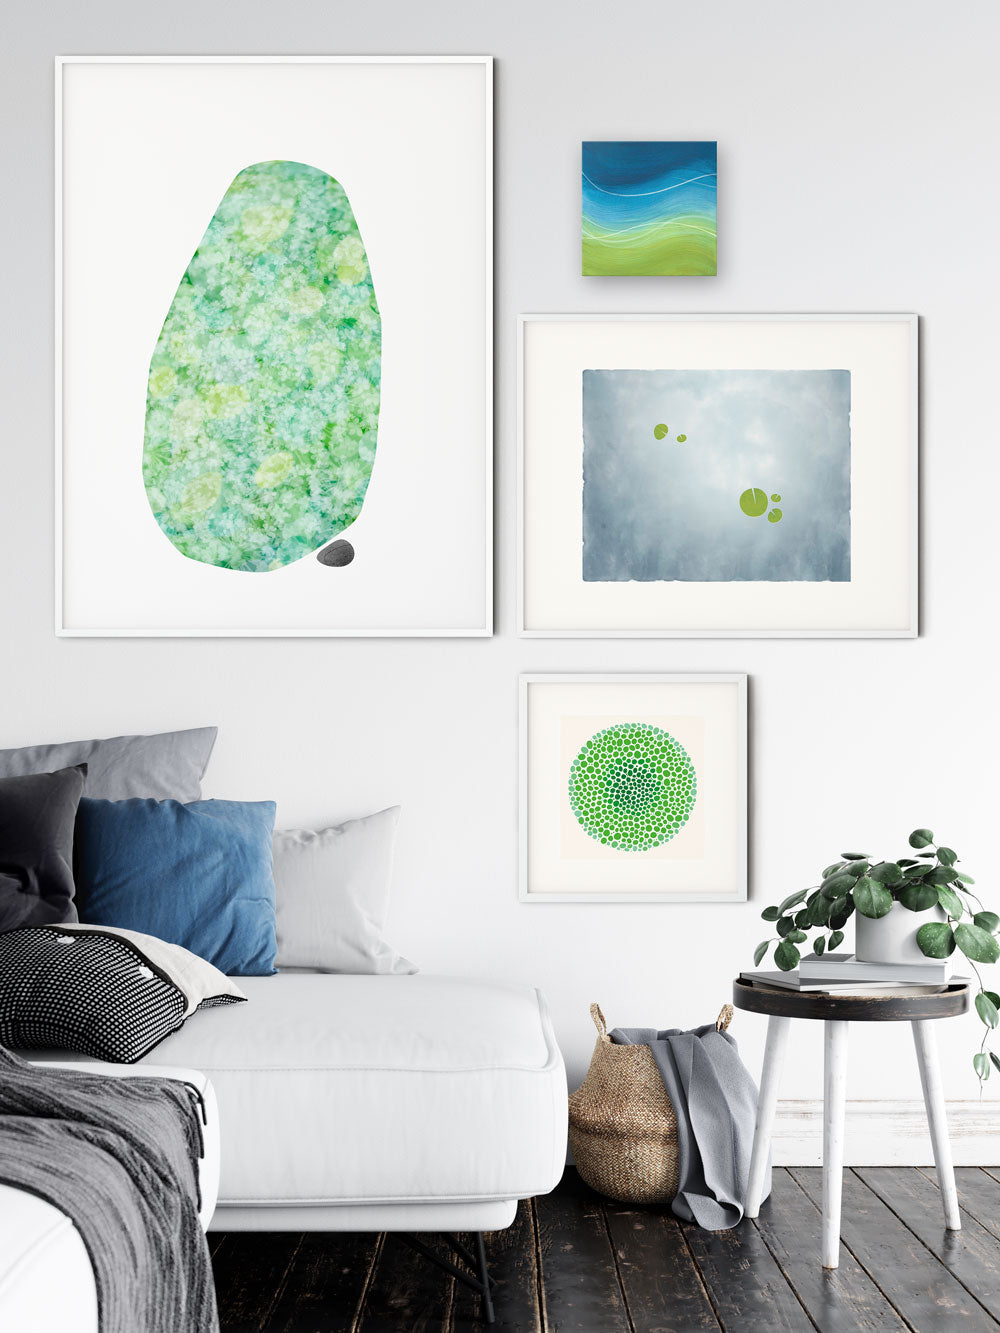 A room with selections from the green collection.